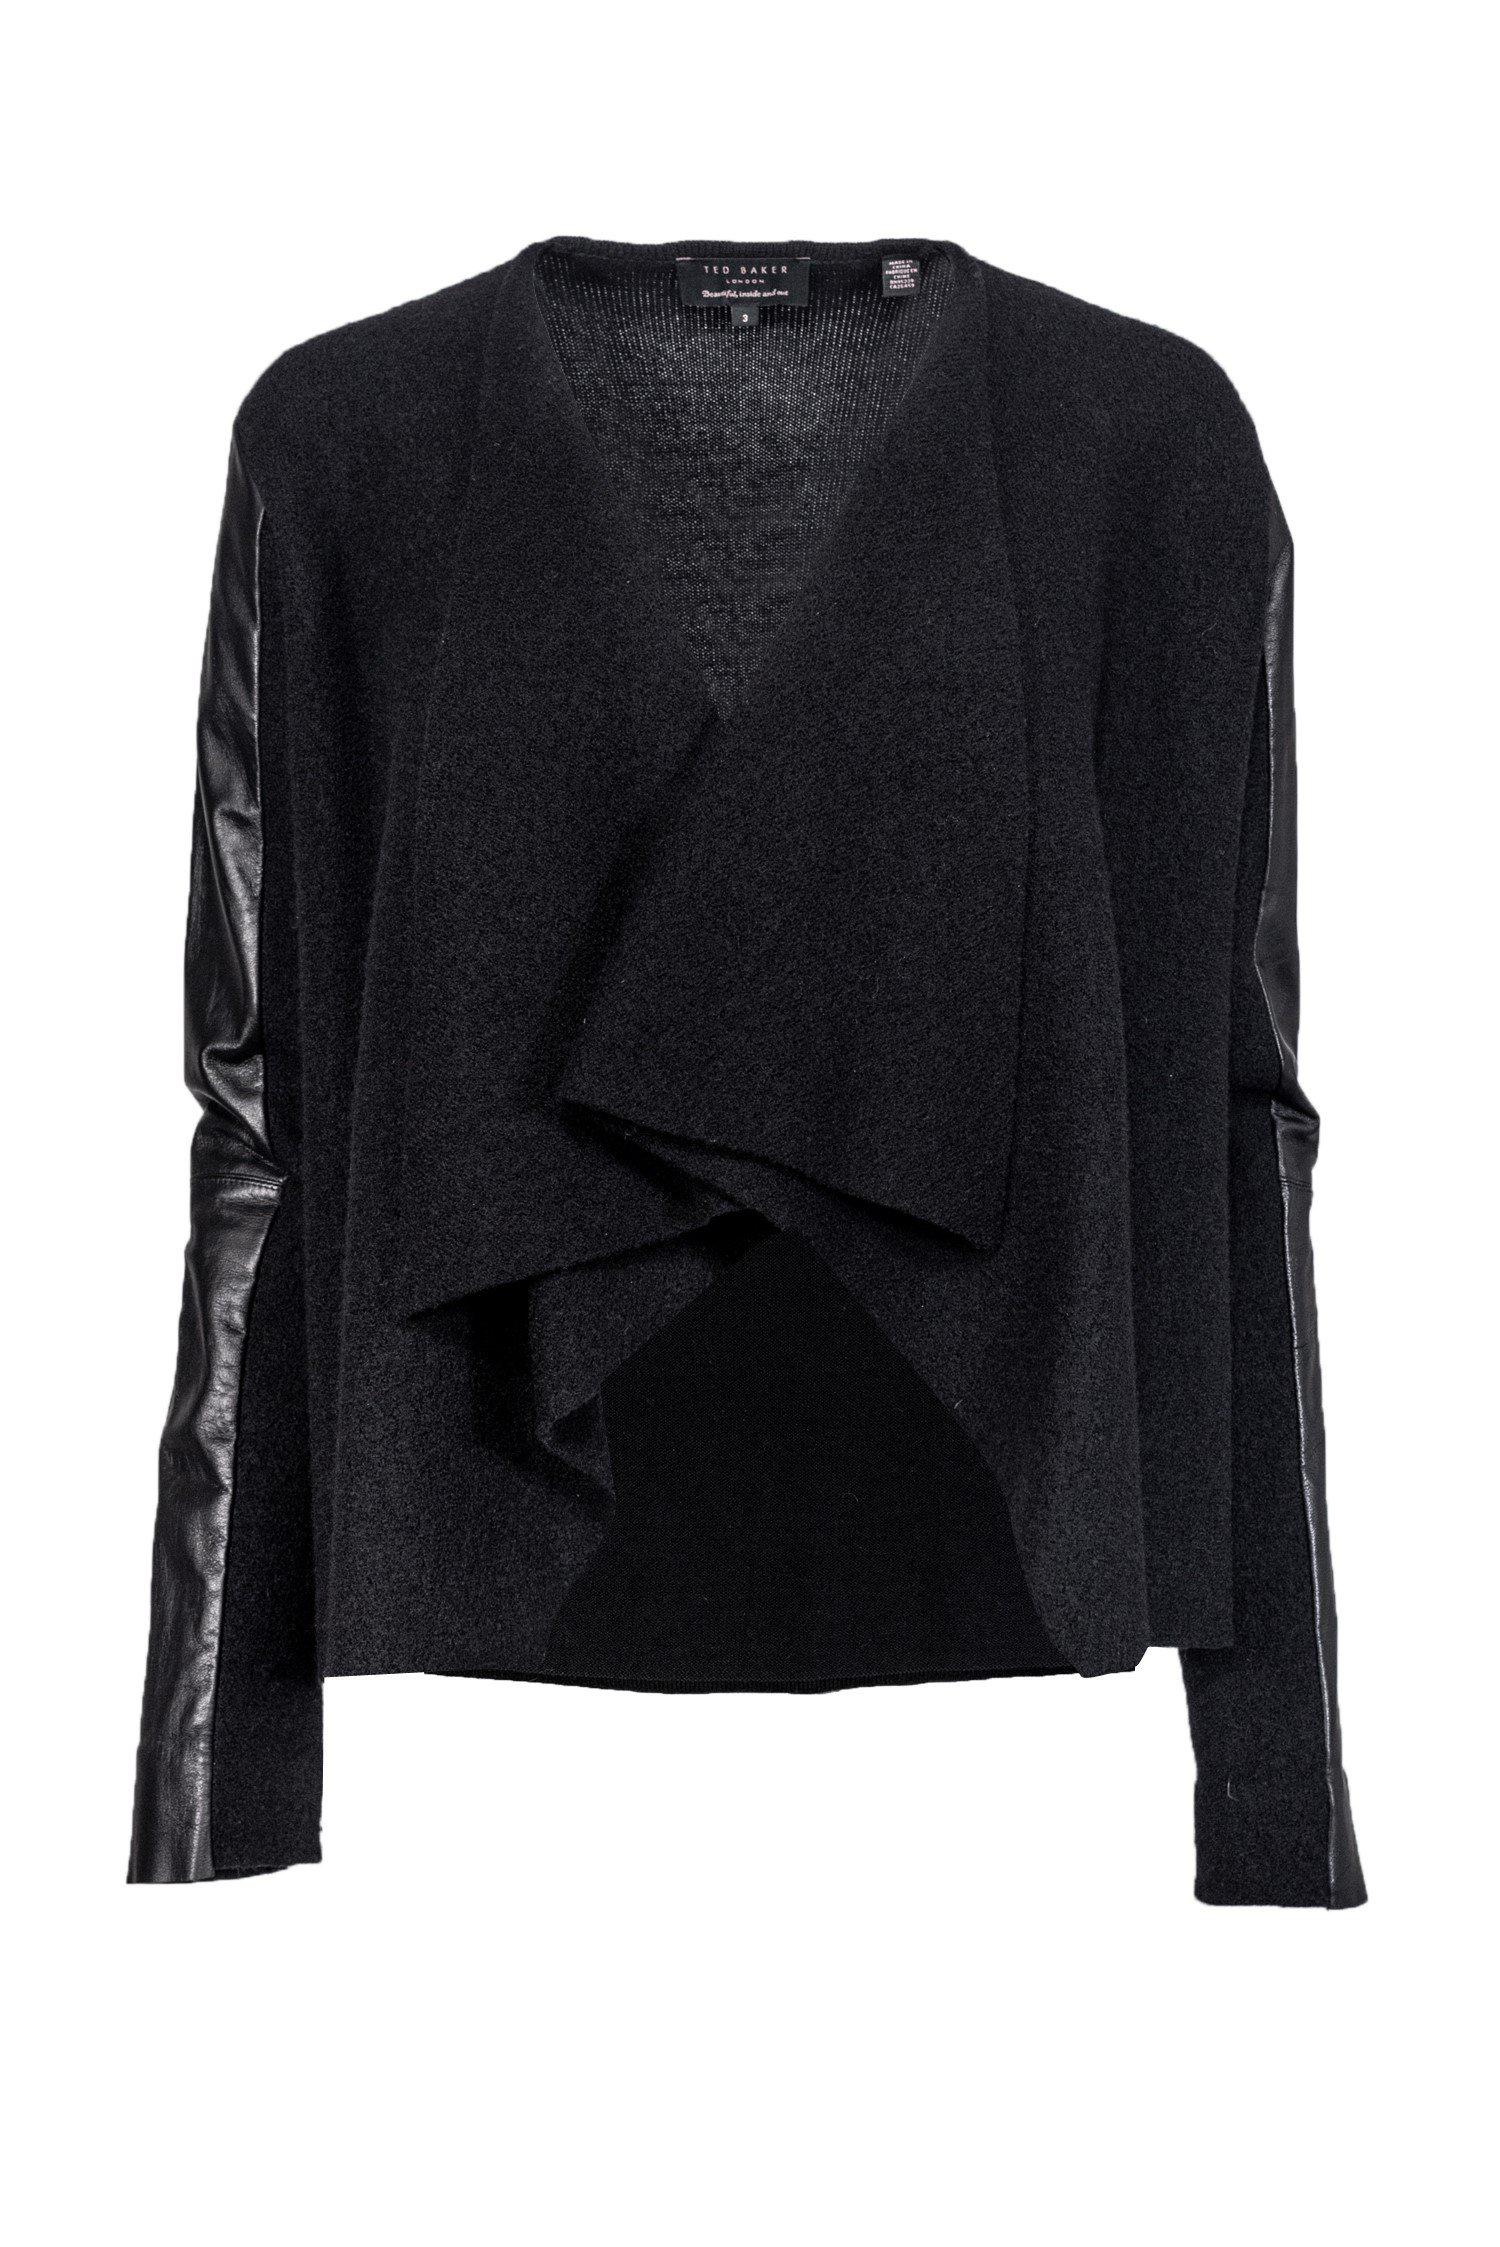 Ted Baker - Black Wool & Leather Cardigan Sz 8